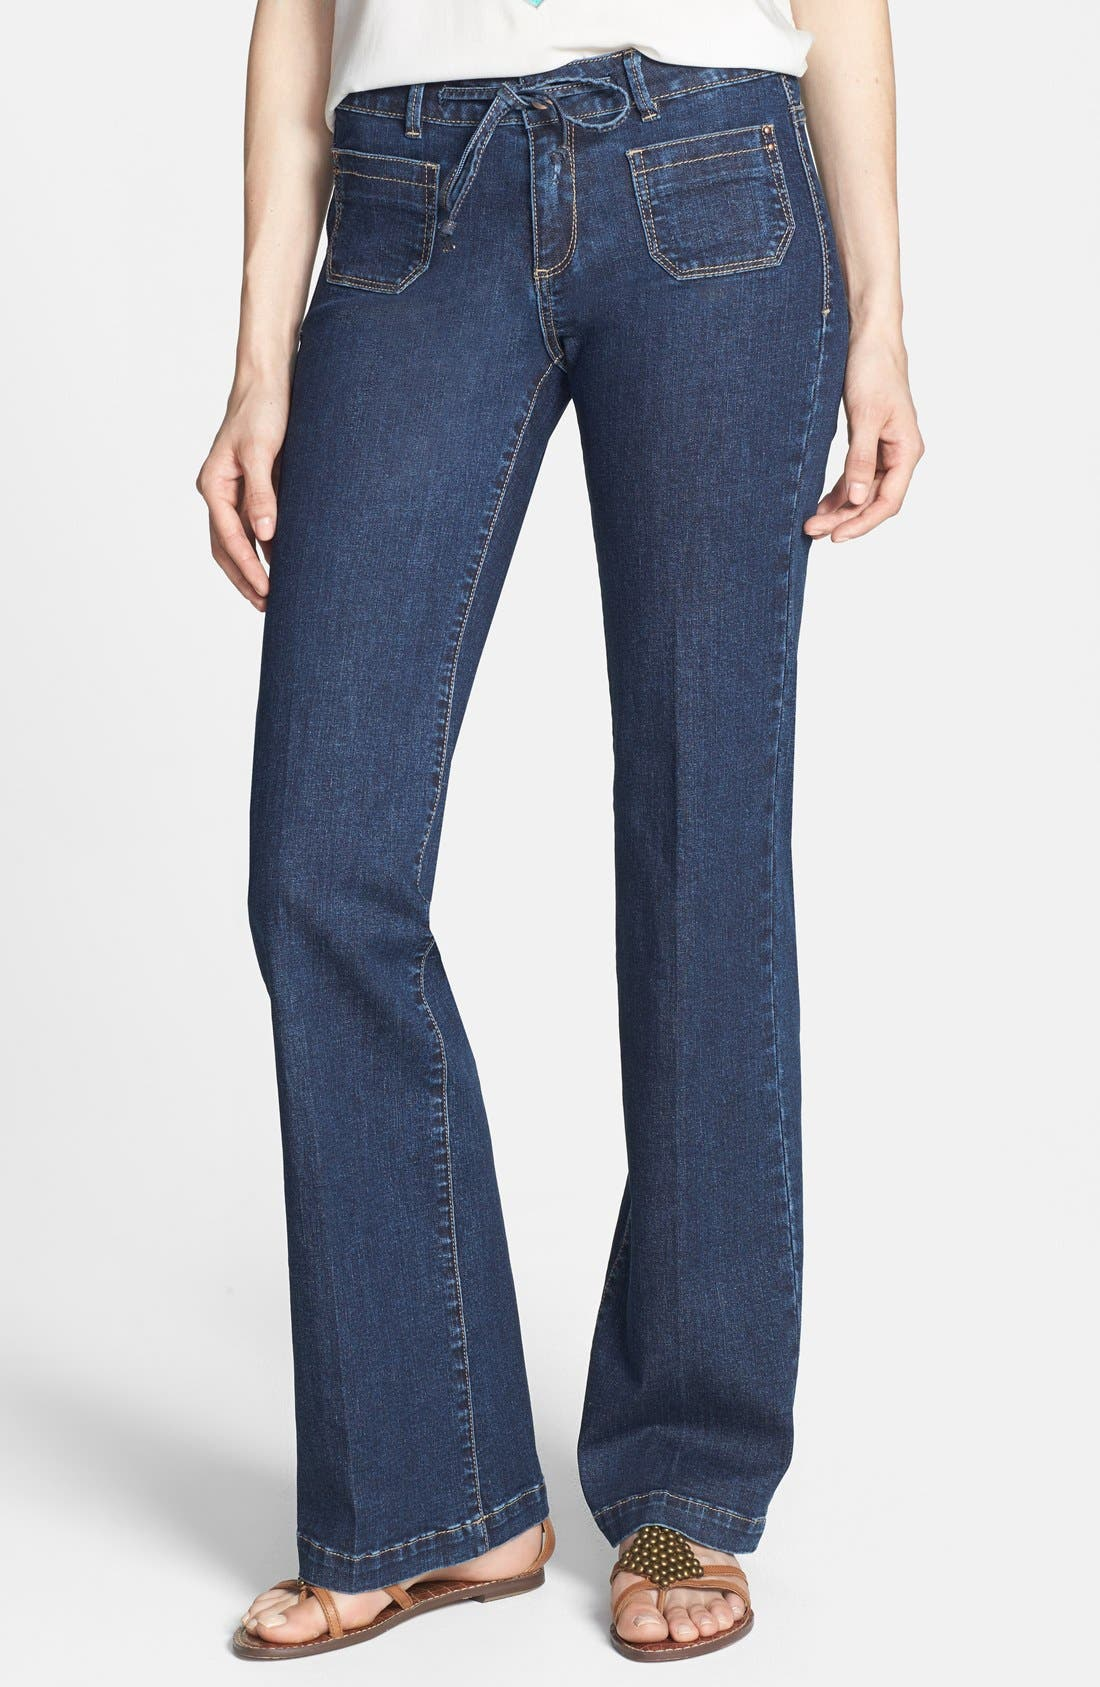 Alternate Image 1 Selected - HART Denim 'Pheona' Wide Leg Trouser Jeans (Carbon) (Juniors)